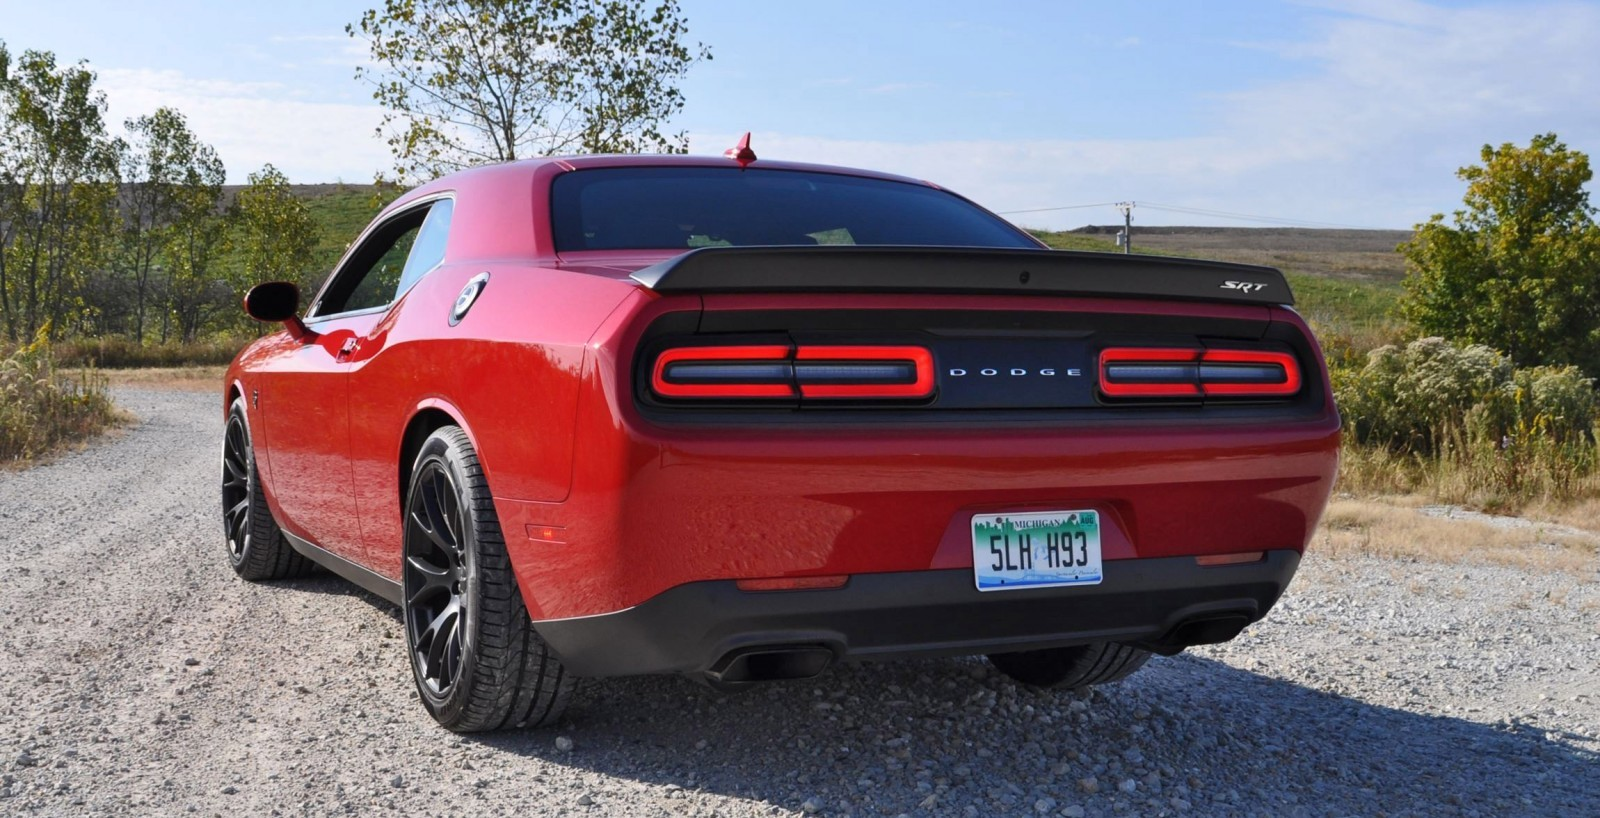 used dodge challenger srt hellcat rwd for sale from - HD1600×818